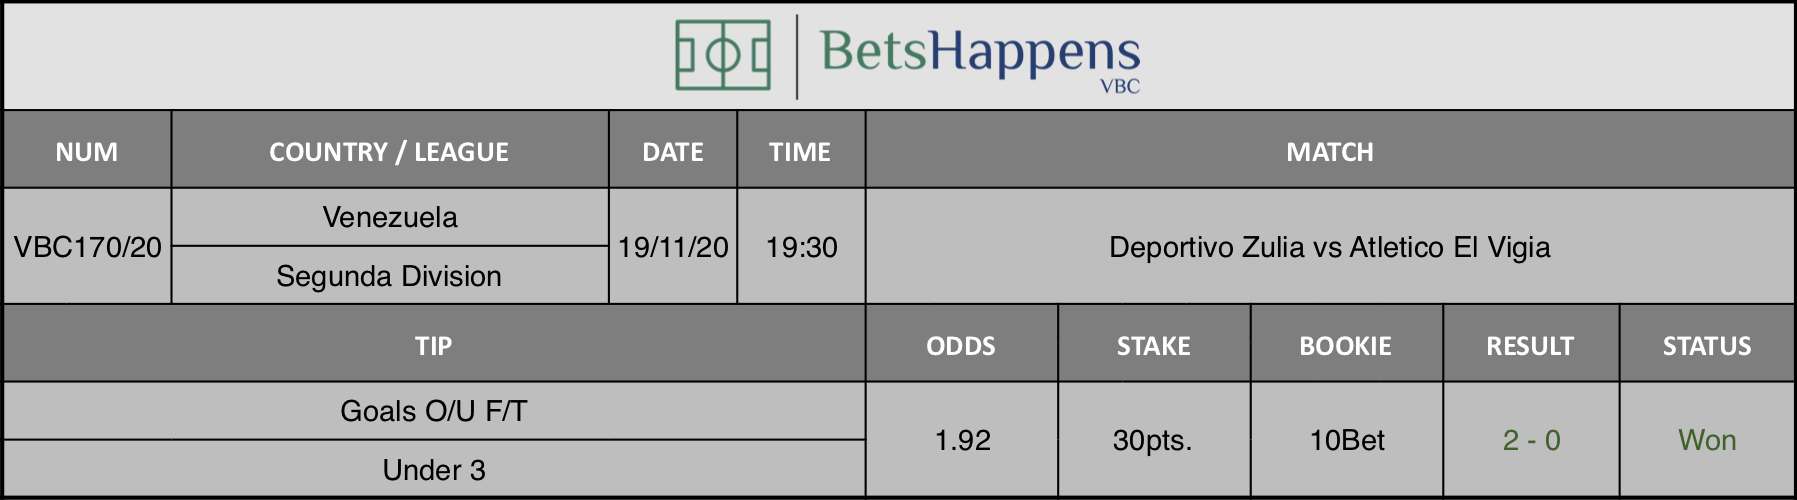 Results of our tip for the Deportivo Zulia vs Atletico El Vigia match where Goals O/U F/T Under 3 is recommended.